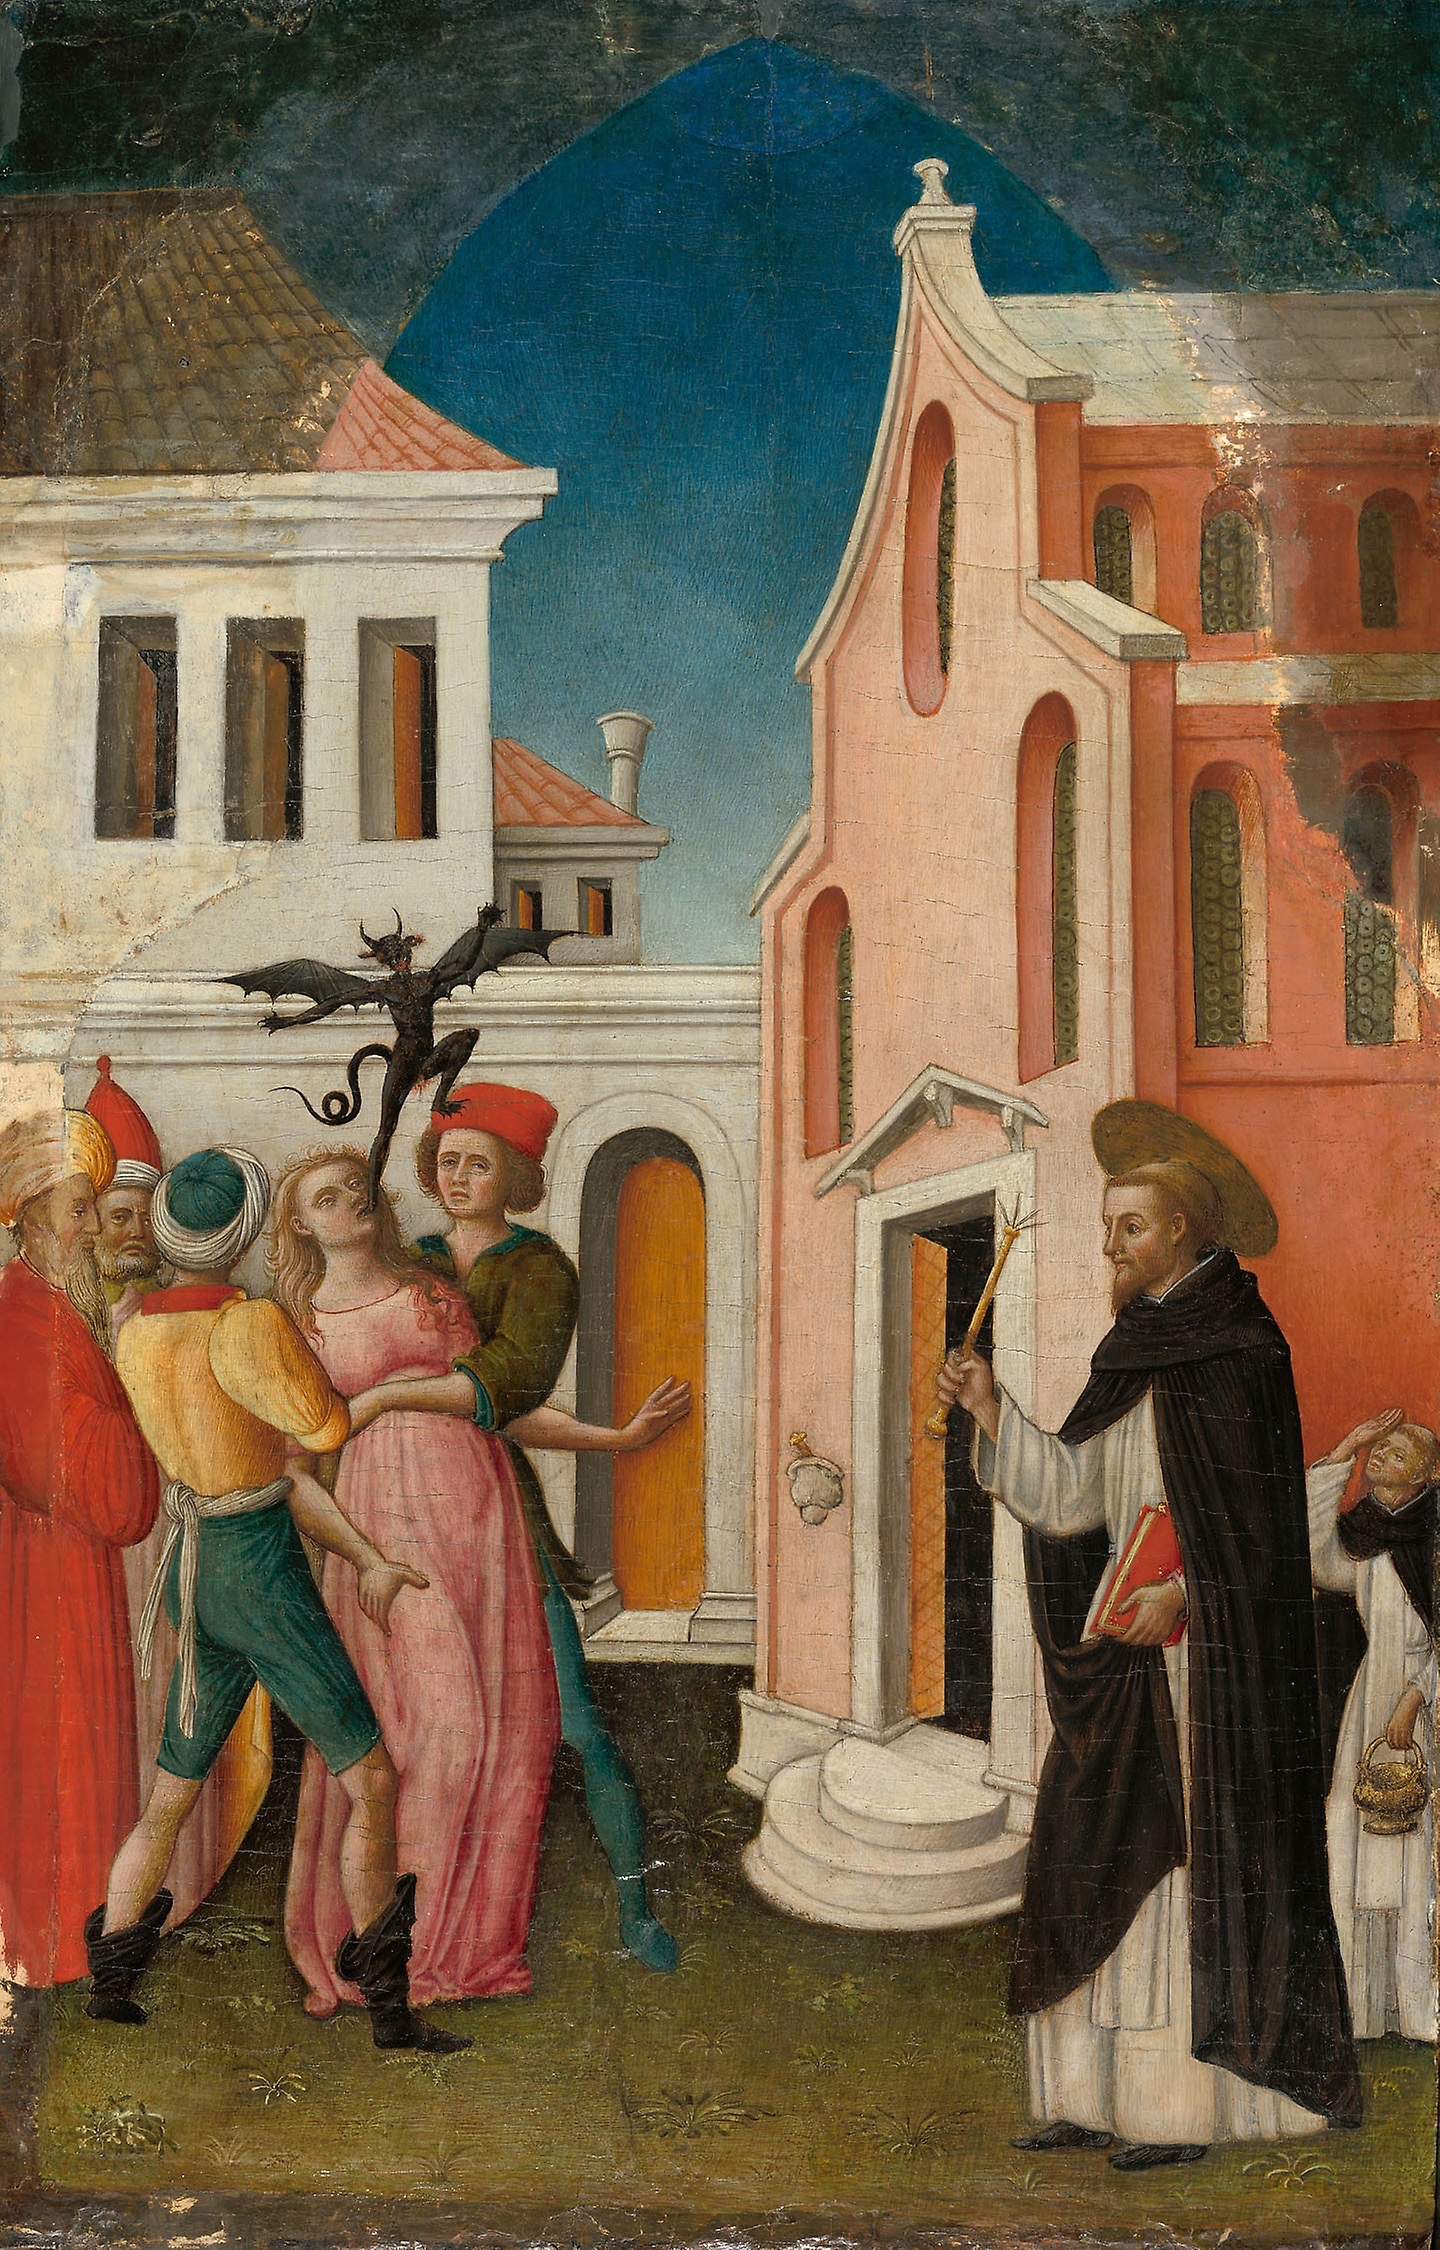 Artist: Antonio Vivarini. Title: Saint Peter Martyr Exorcizing a Woman Possessed by a Devil. Between 1440 & 1455. This work is in the public domain. {{PD}}